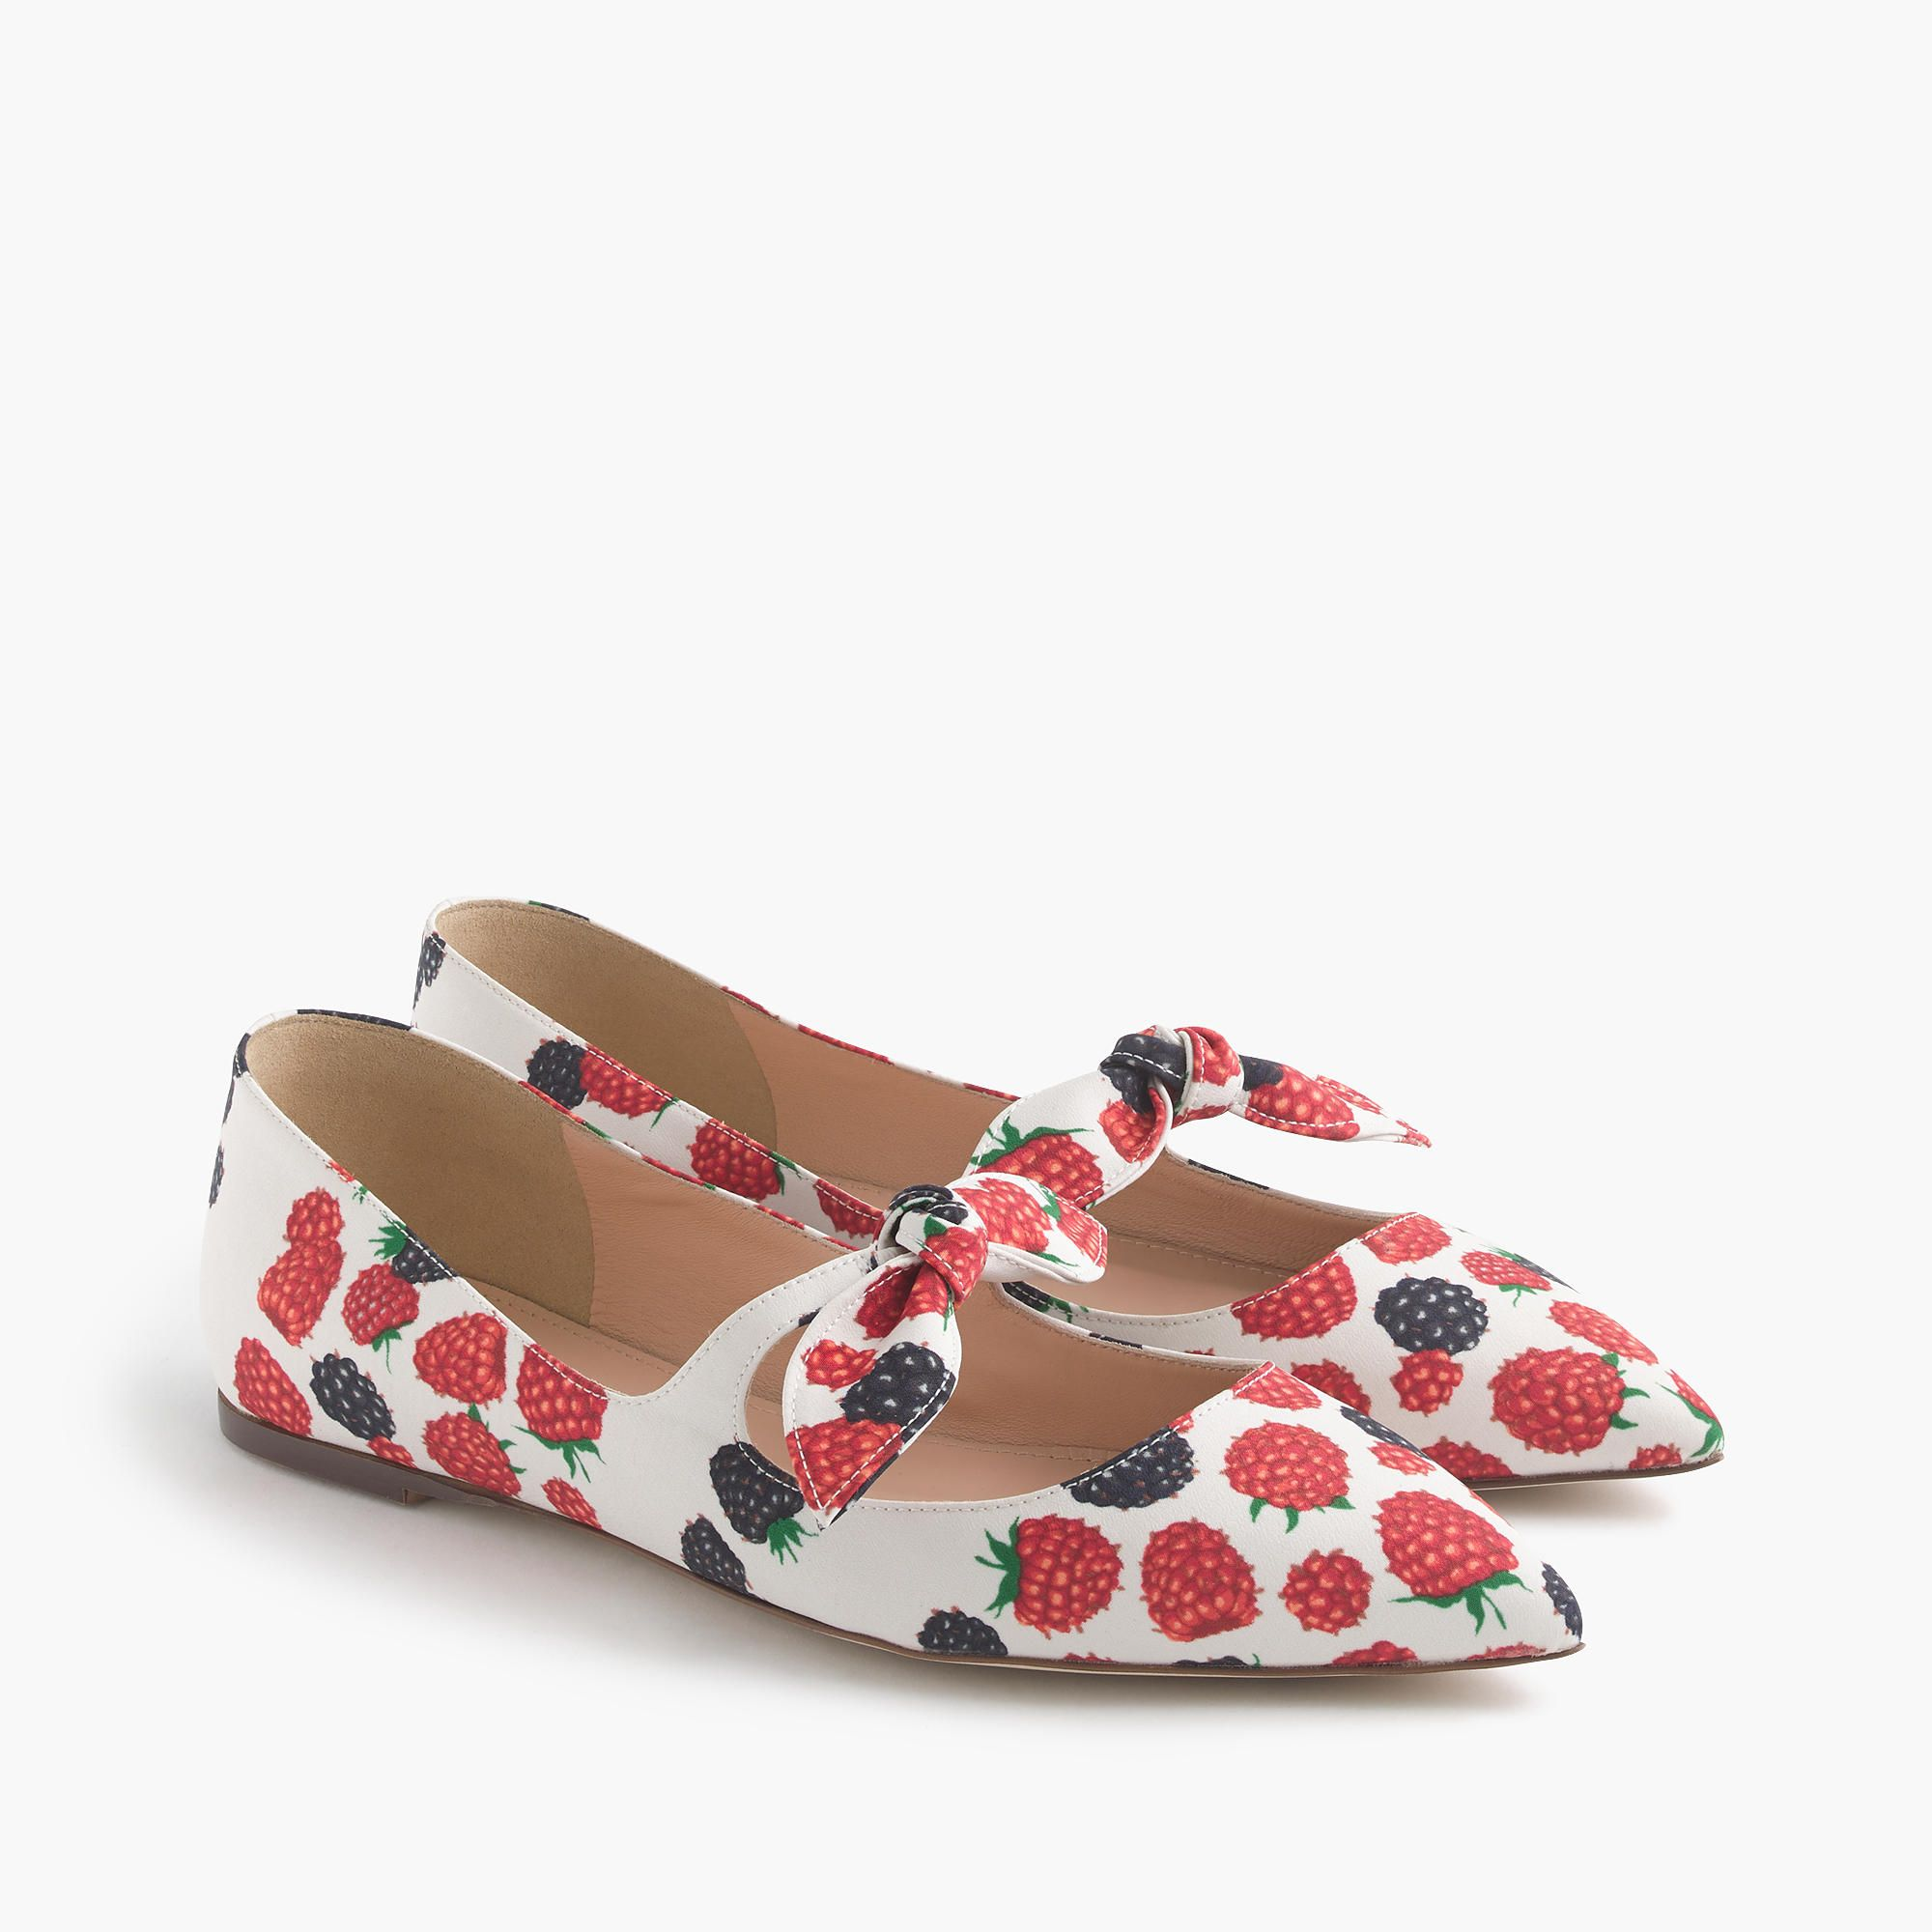 Loafers for women, Fashion shoes flats